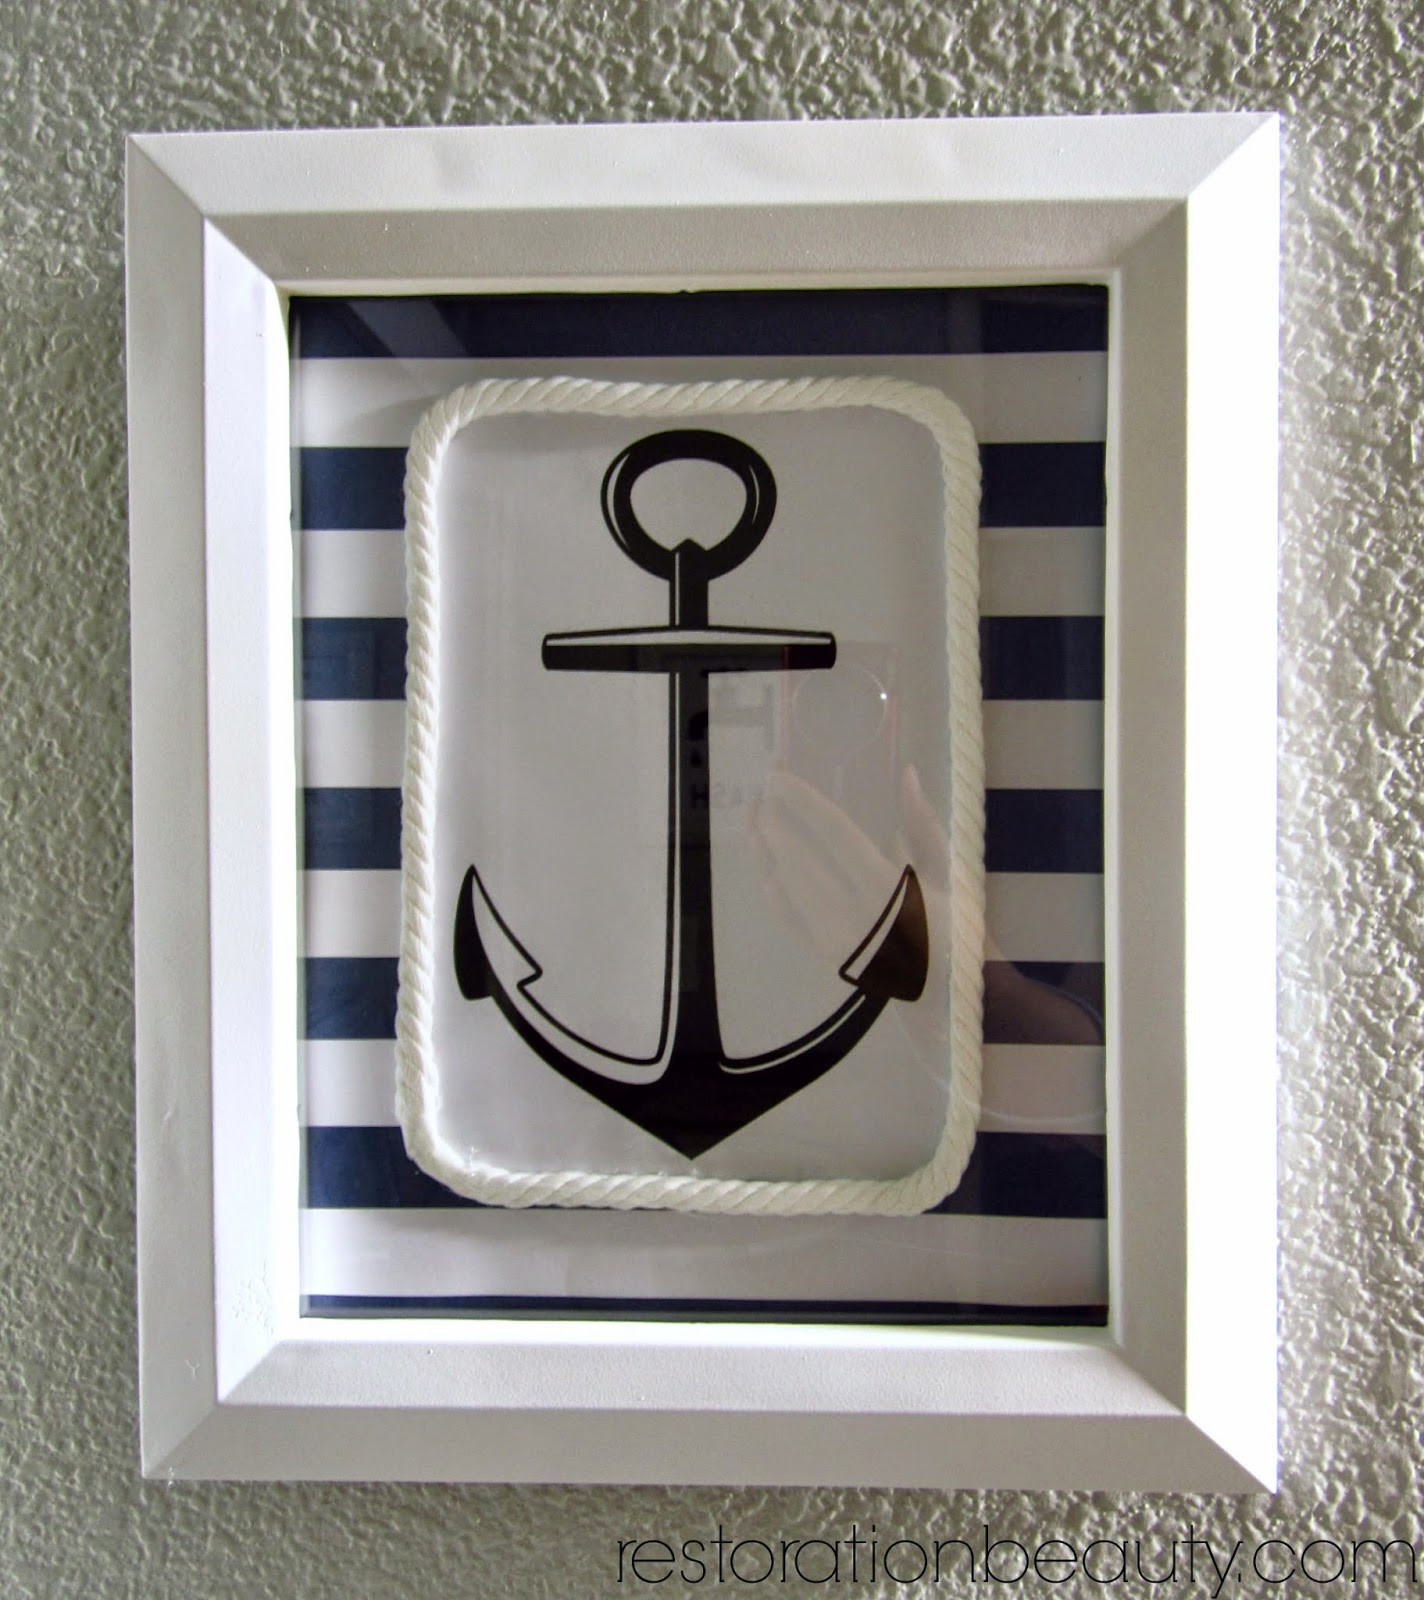 Best ideas about Nautical Wall Art . Save or Pin Restoration Beauty DIY Nautical Wall Art Now.